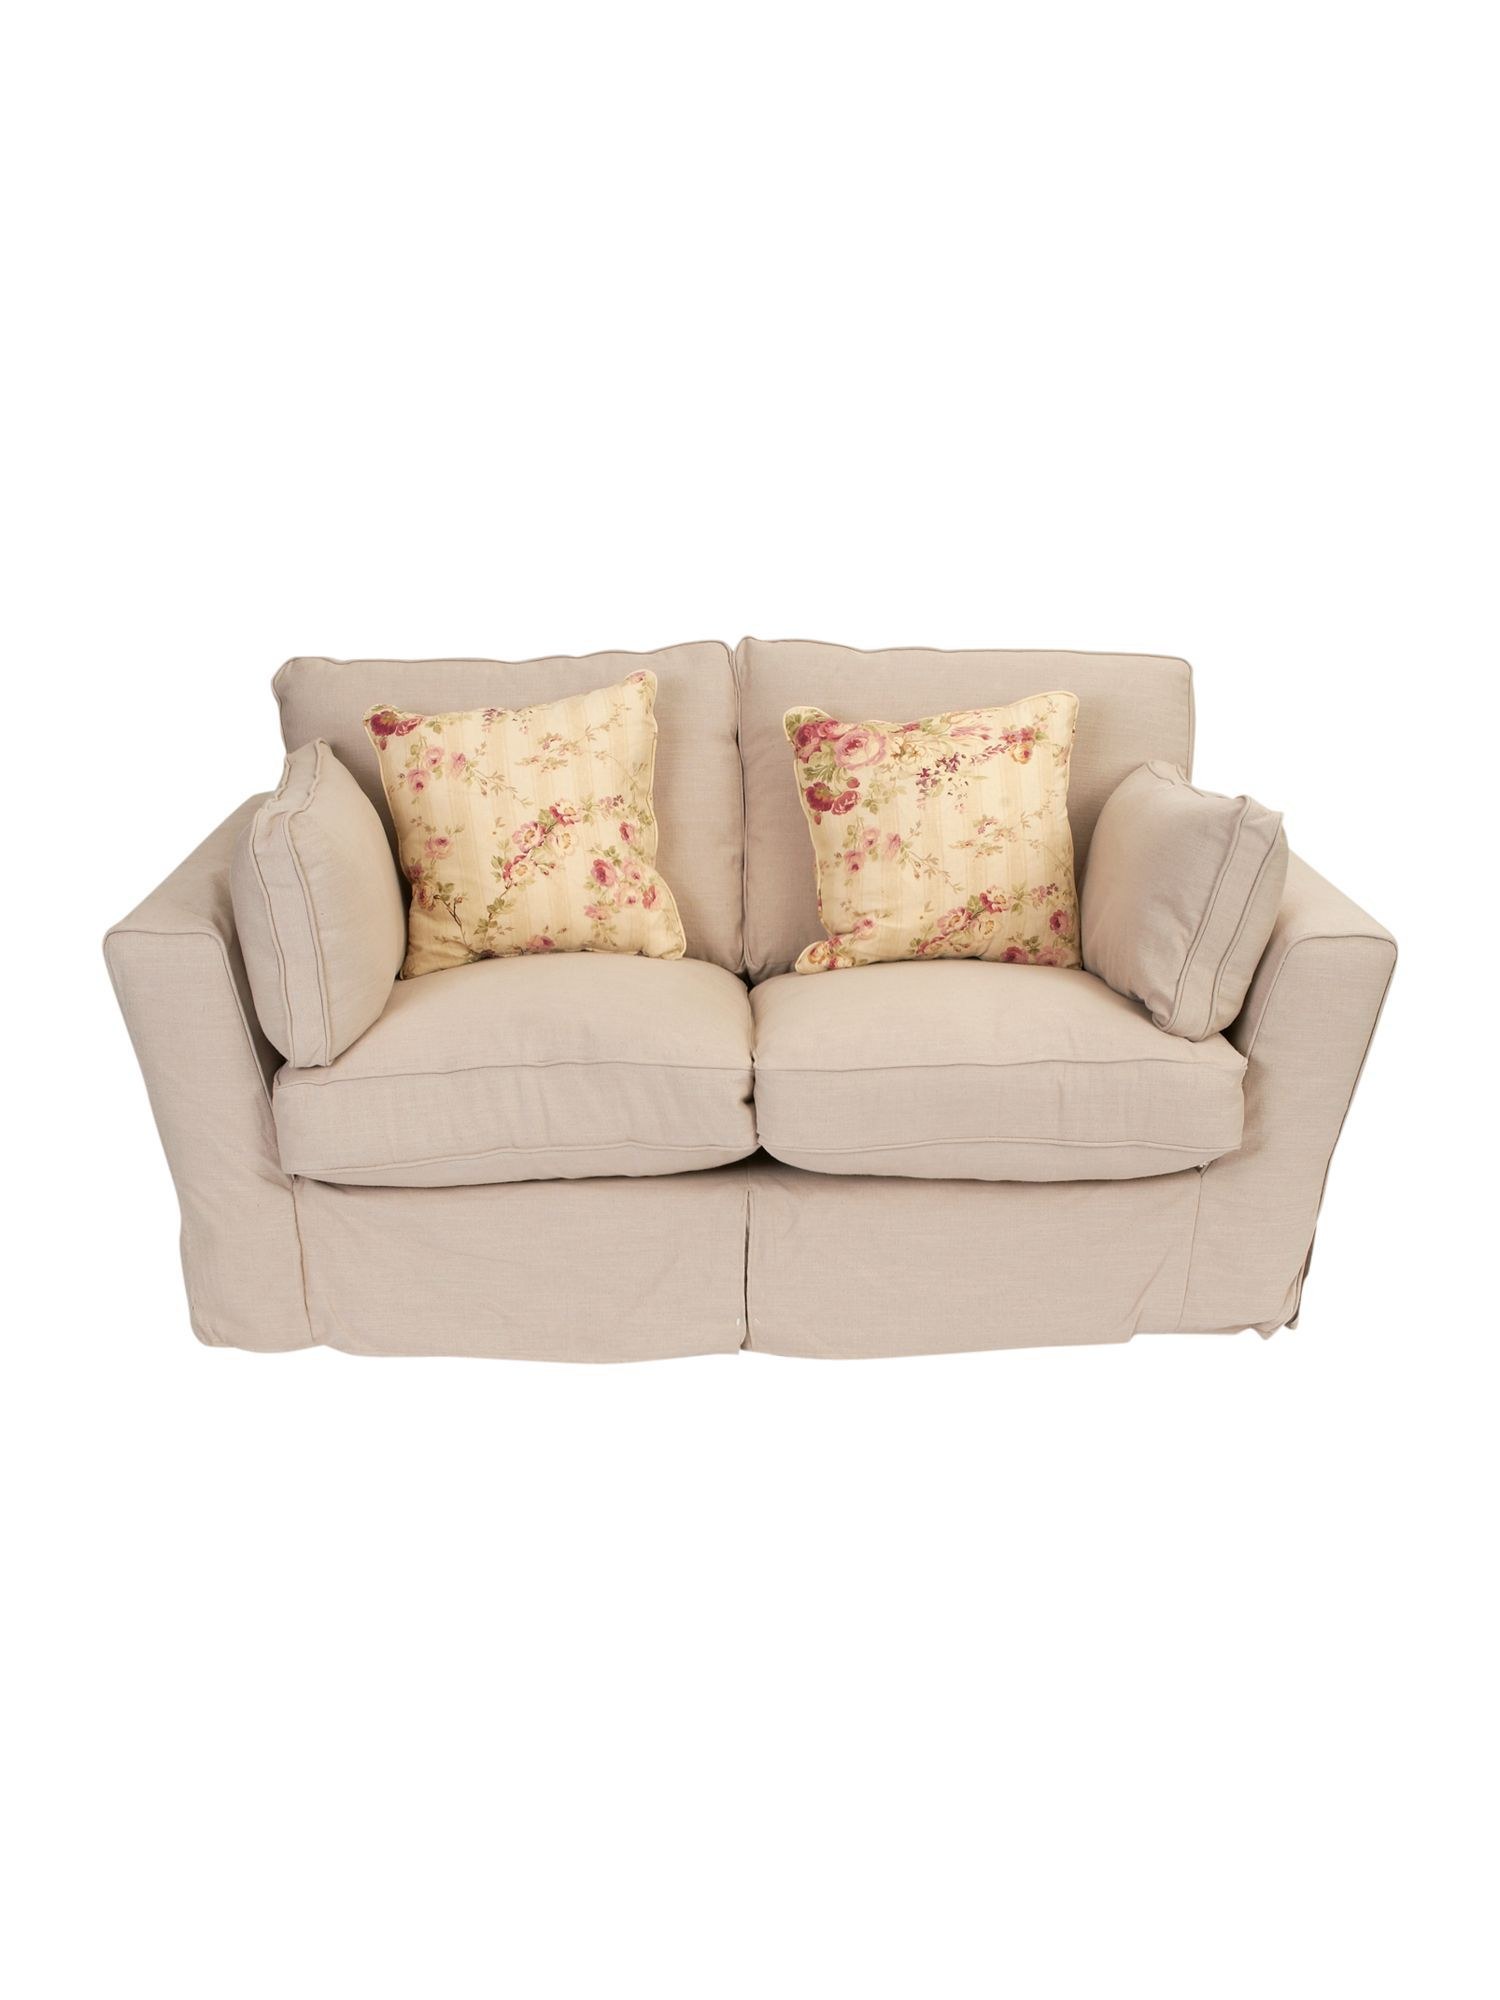 shabby chic sofa bed uk camel back slipcover pattern relax small